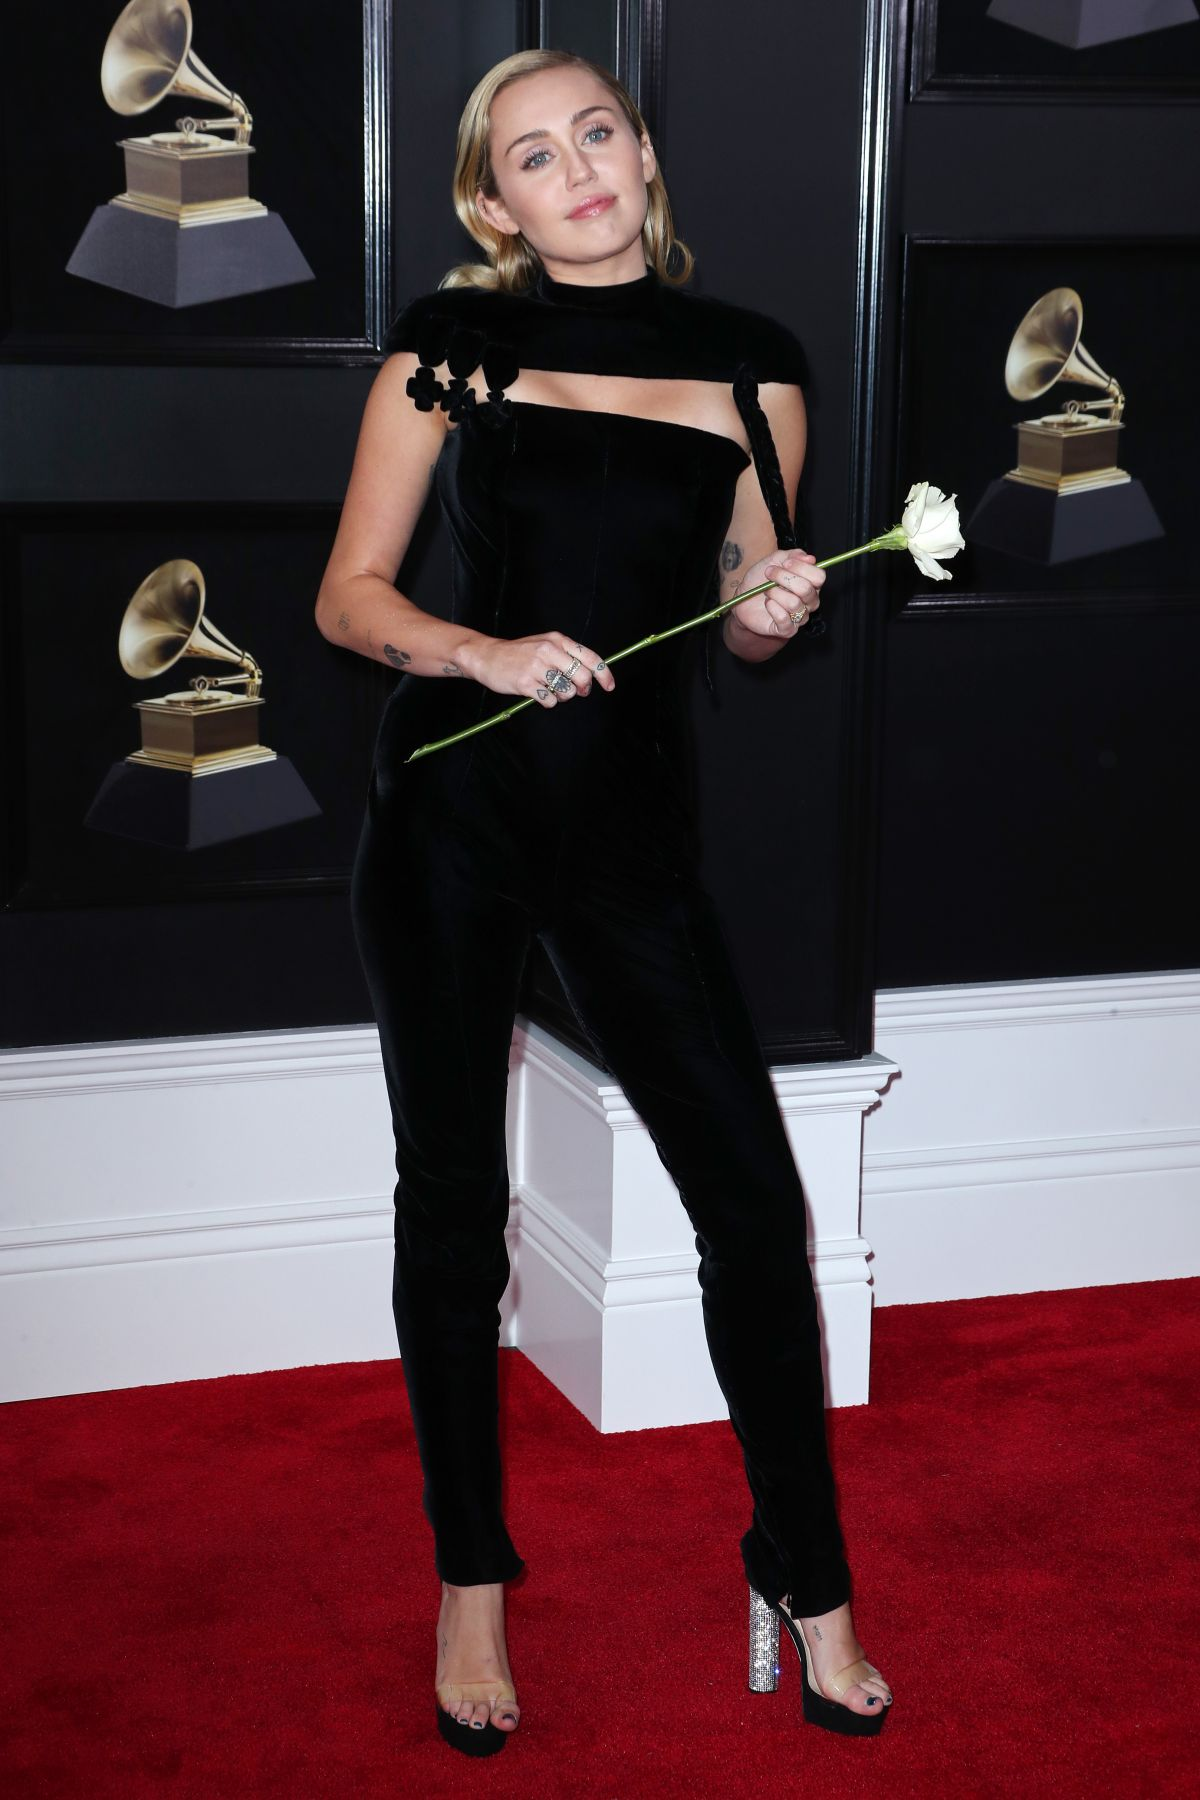 MILEY CYRUS at Grammy 2018 Awards in New York 01/28/2018 ... Miley Cyrus